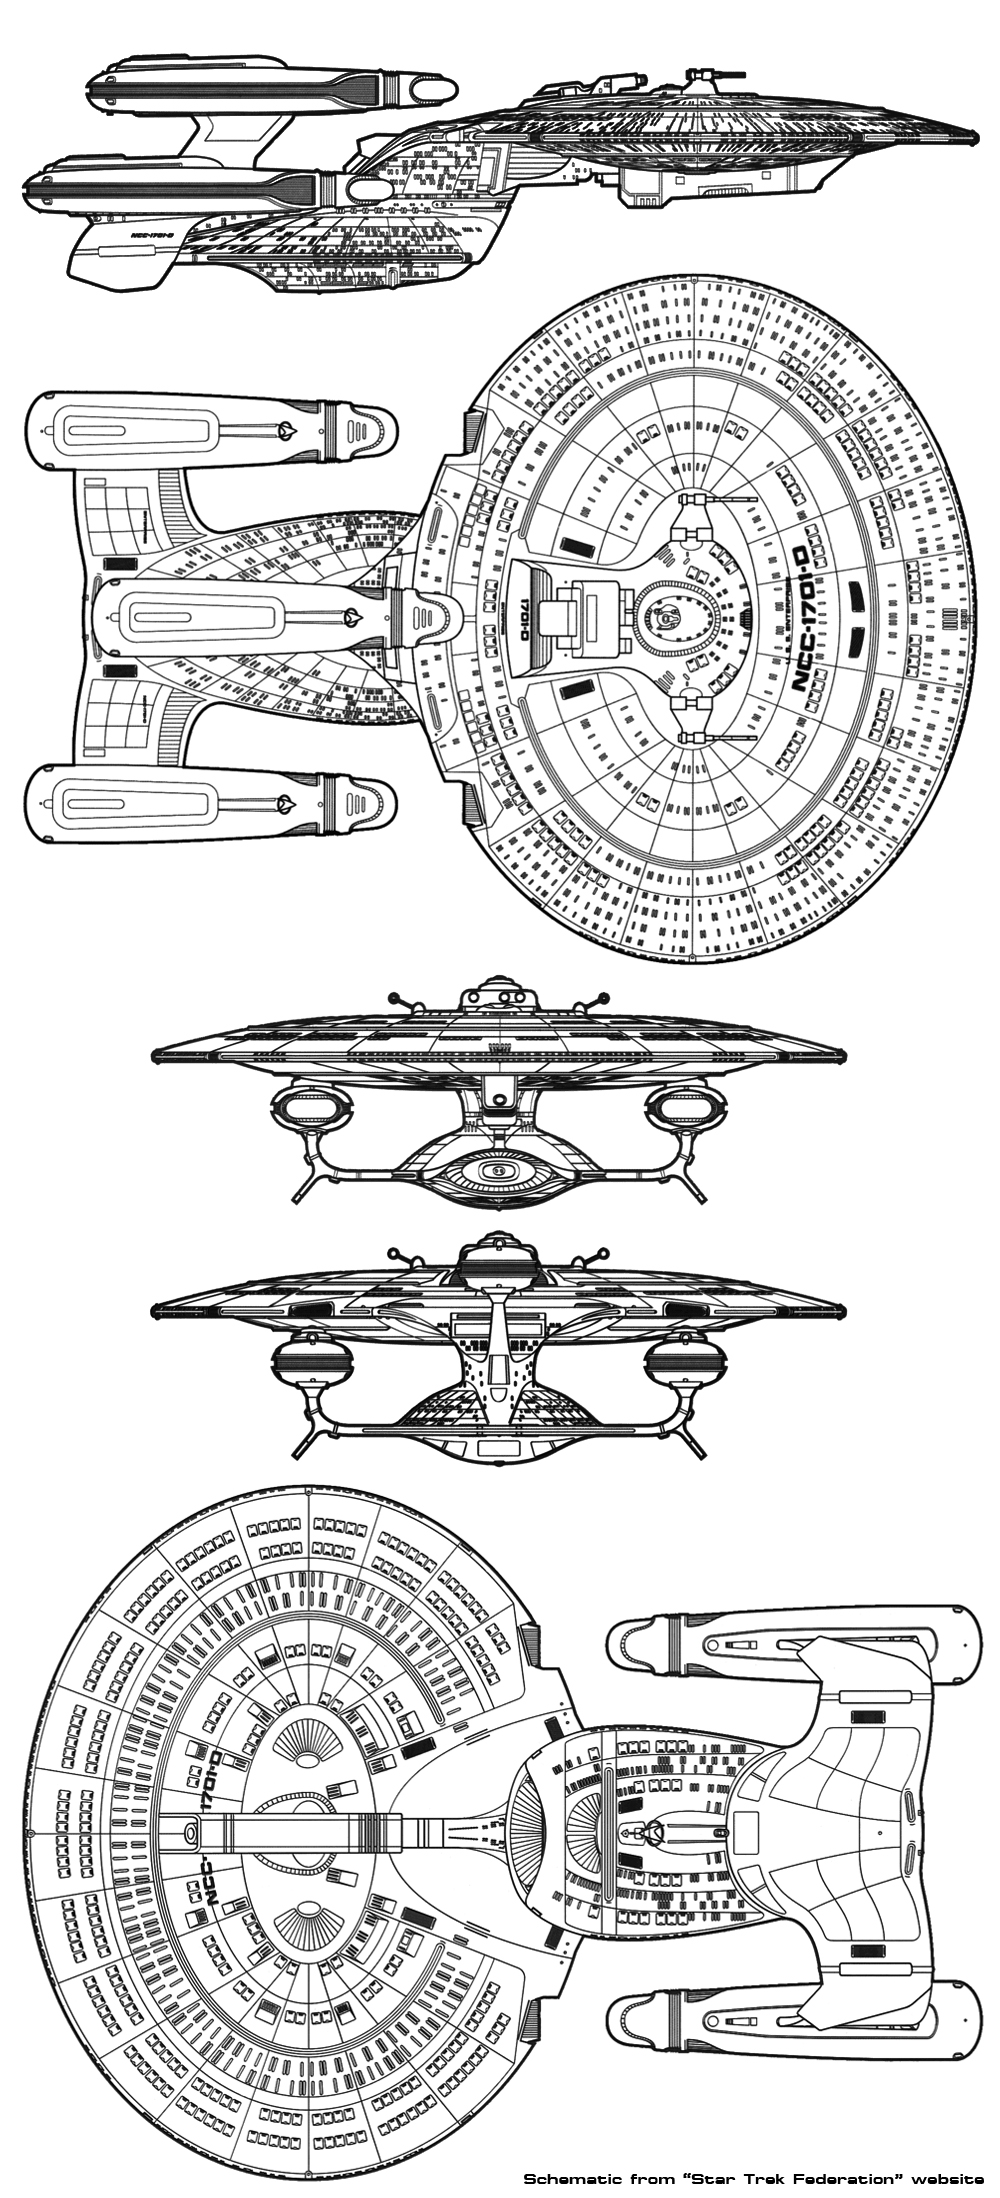 recycling starship models